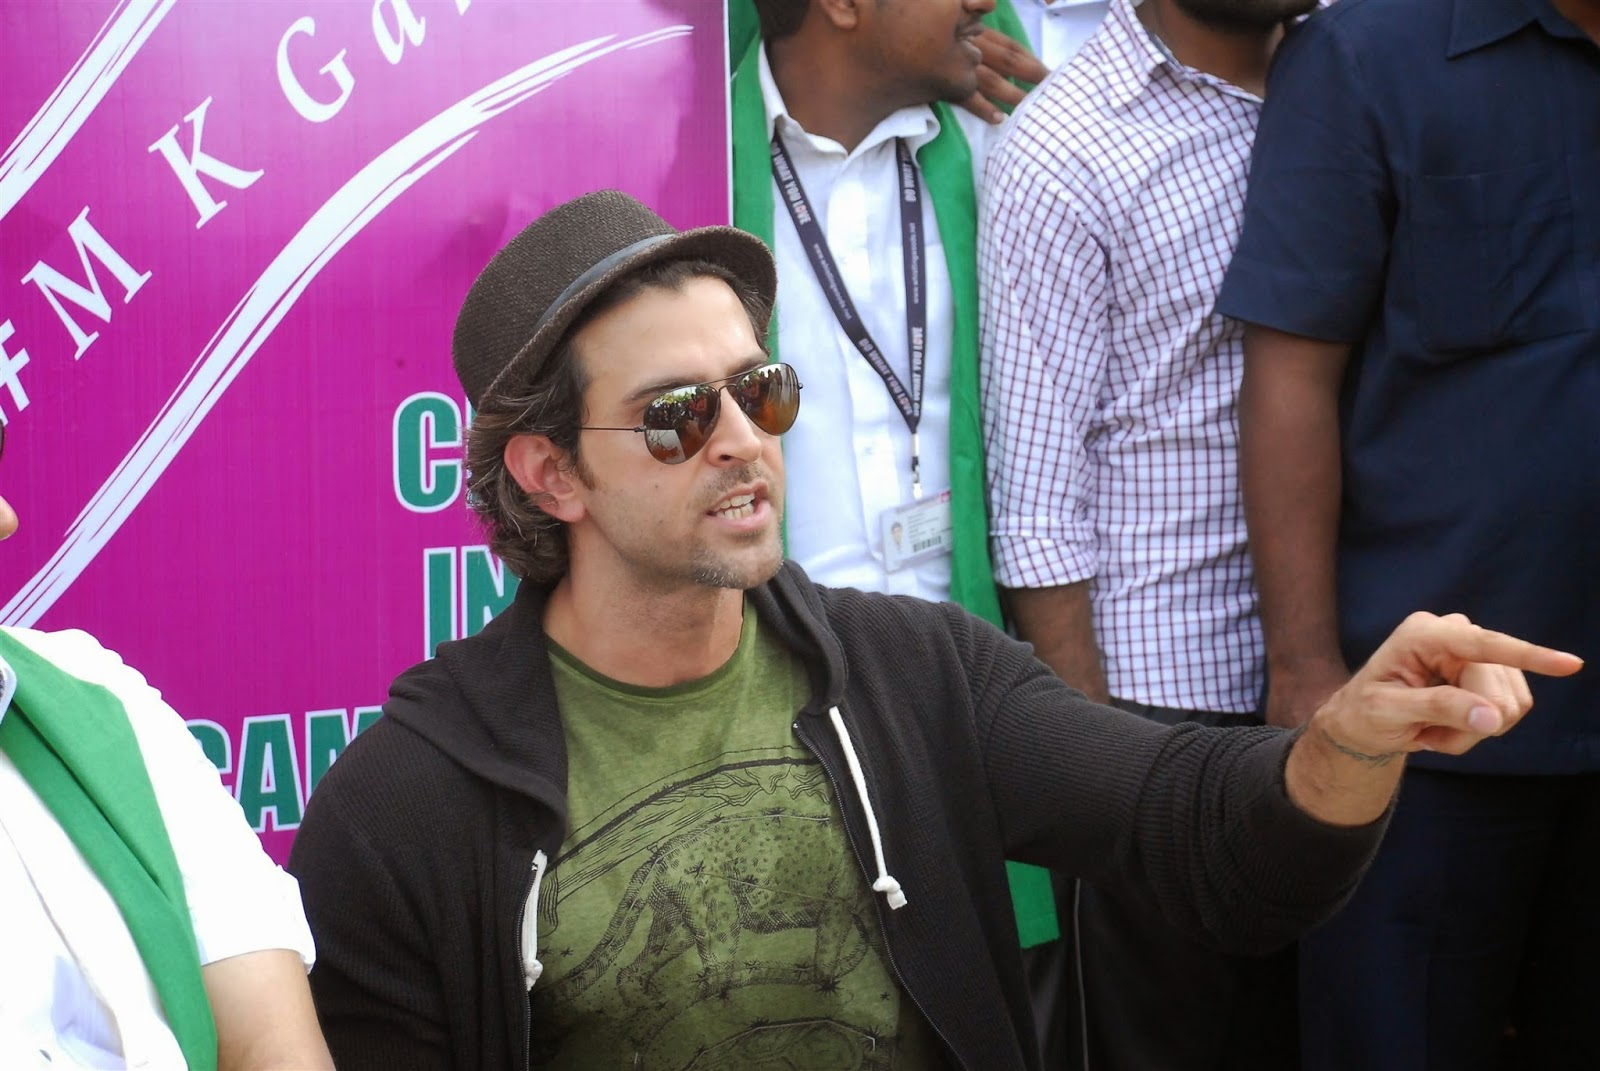 Hrithik Roshan Supports PM's Clean India Campaign